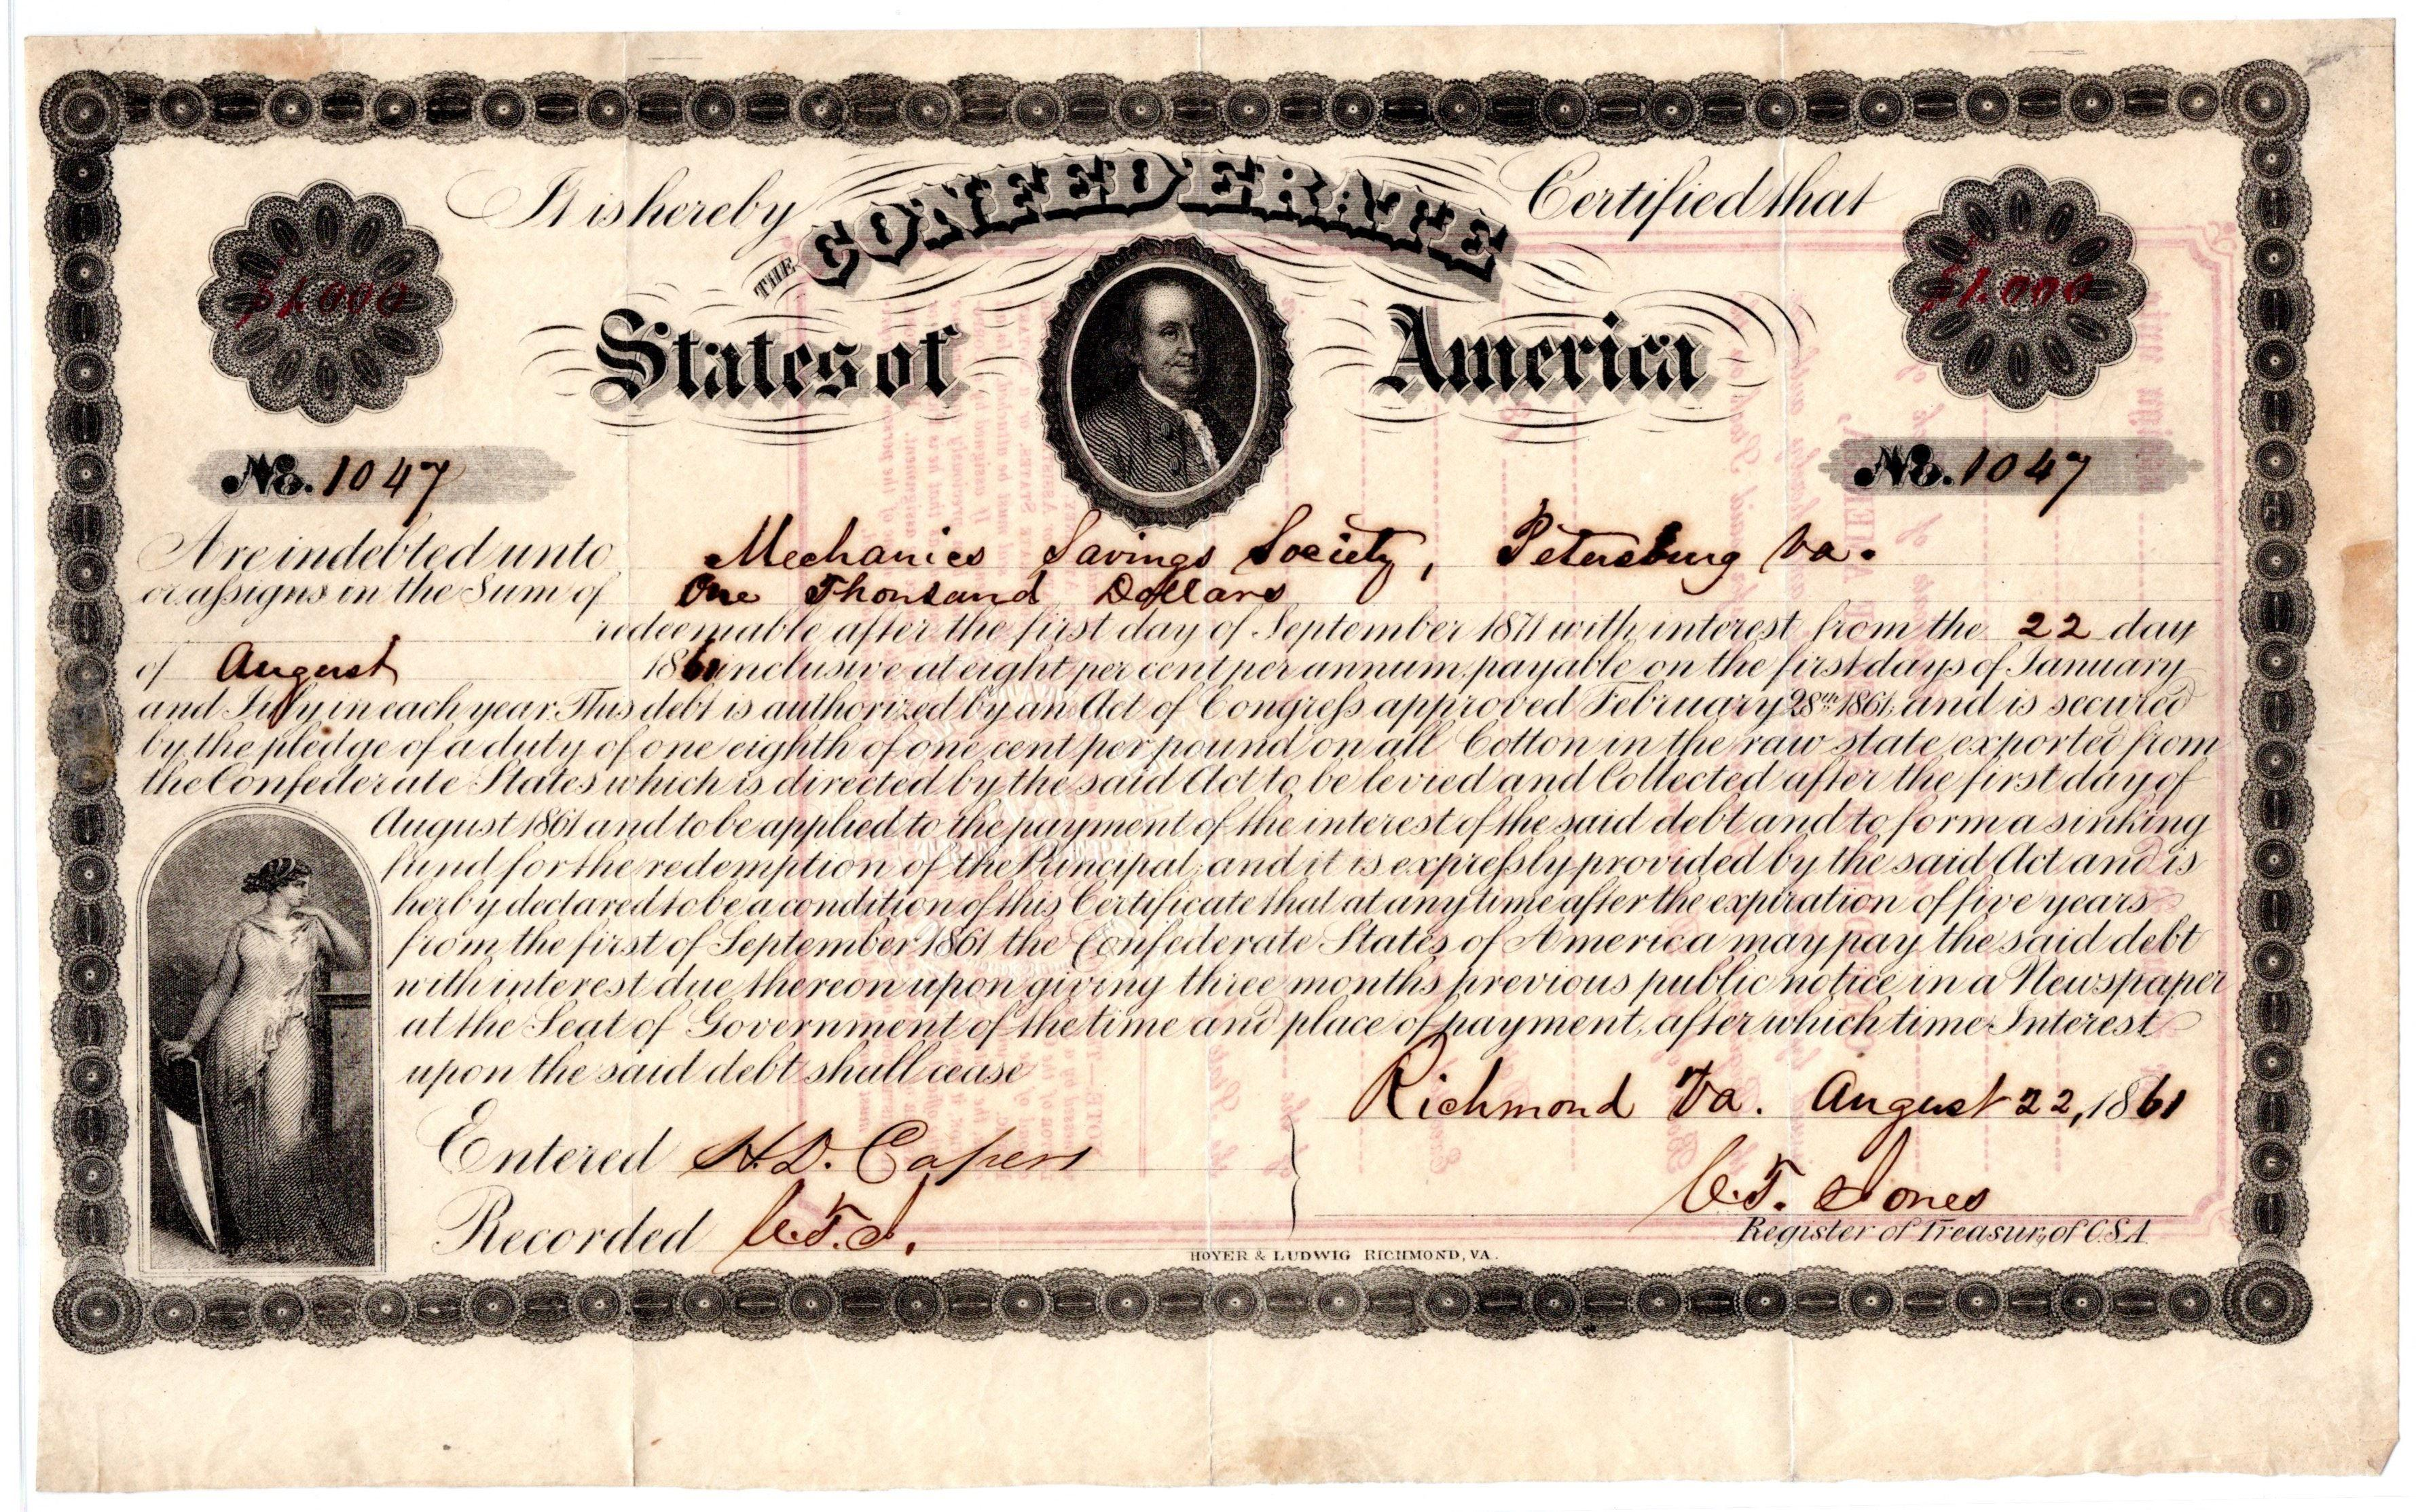 Rare Early Confederate Loan Certificate with Image of Benjamin Franklin